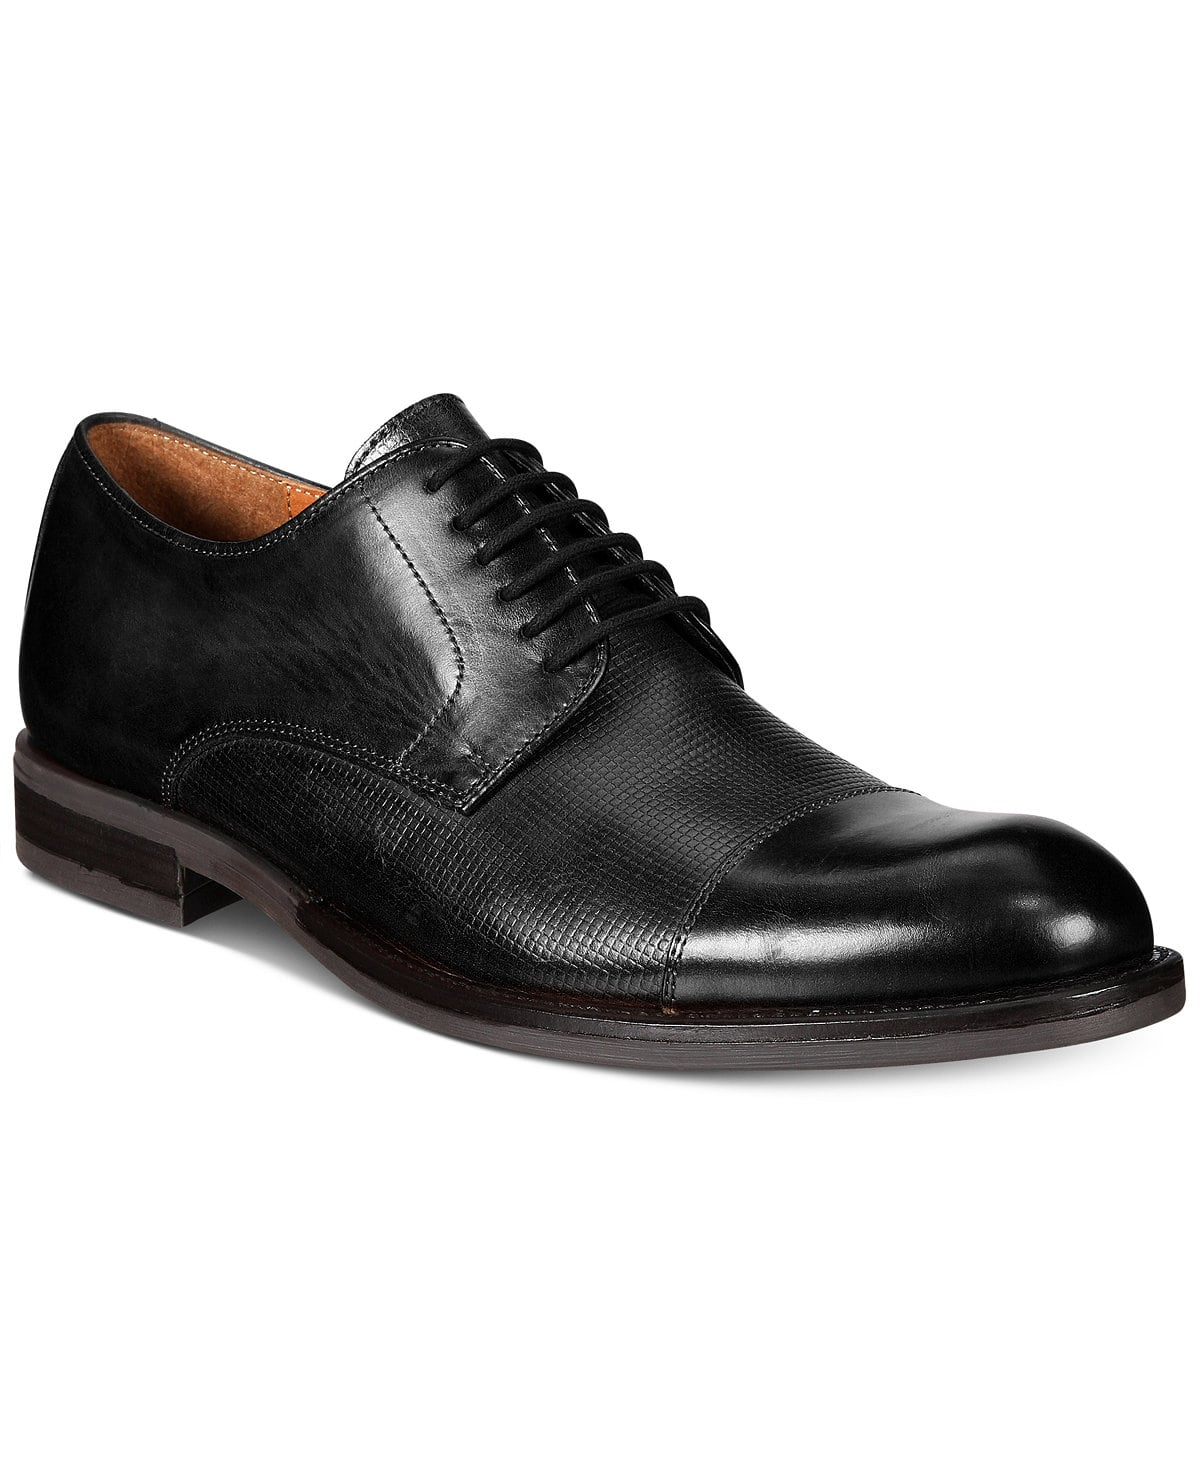 Macys Dress Code Shoes